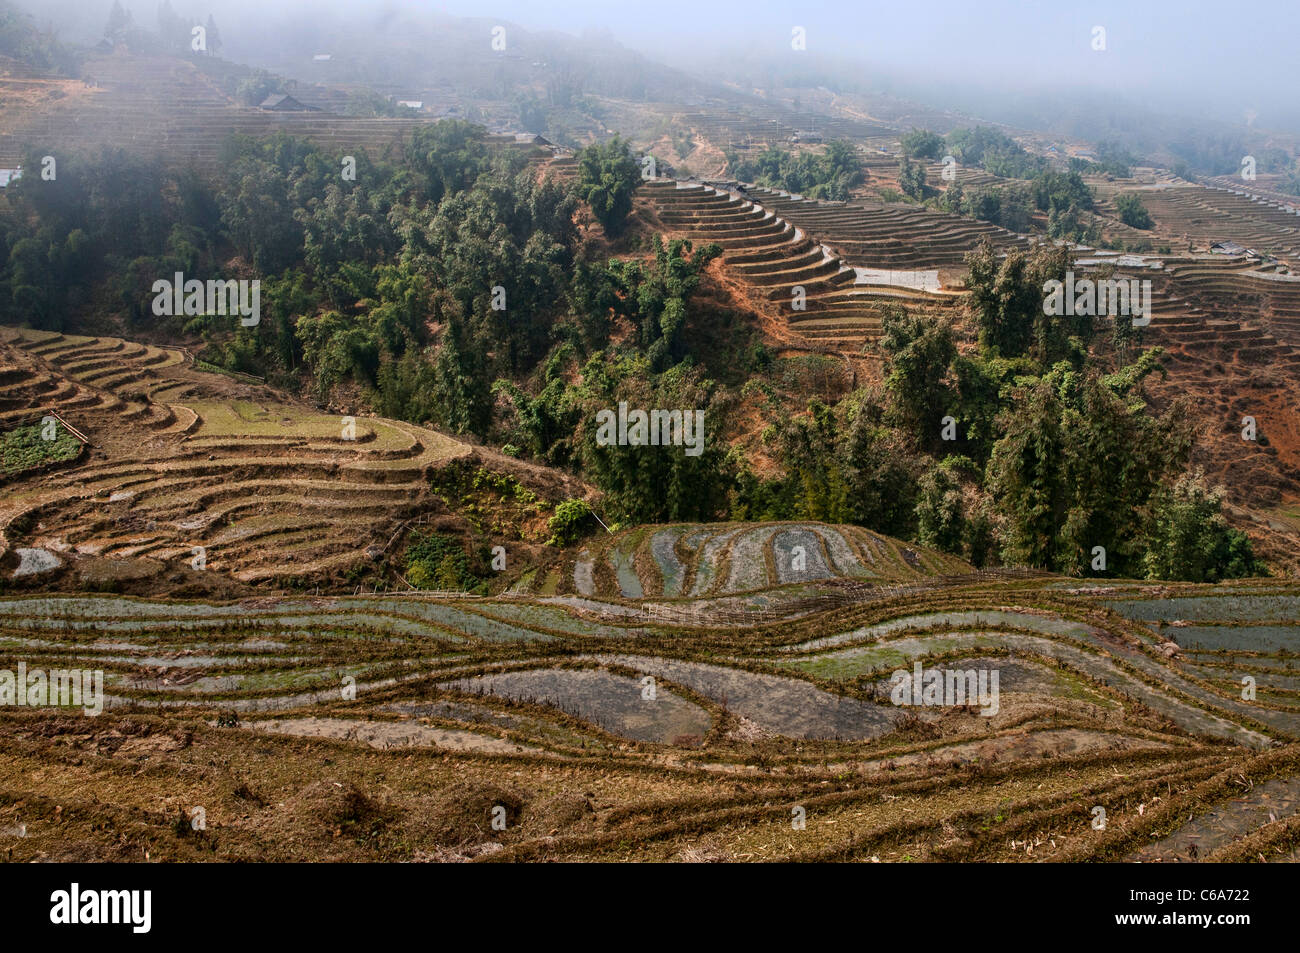 Terrace fields in the North of Vietnam, near Lao Cai - Stock Image